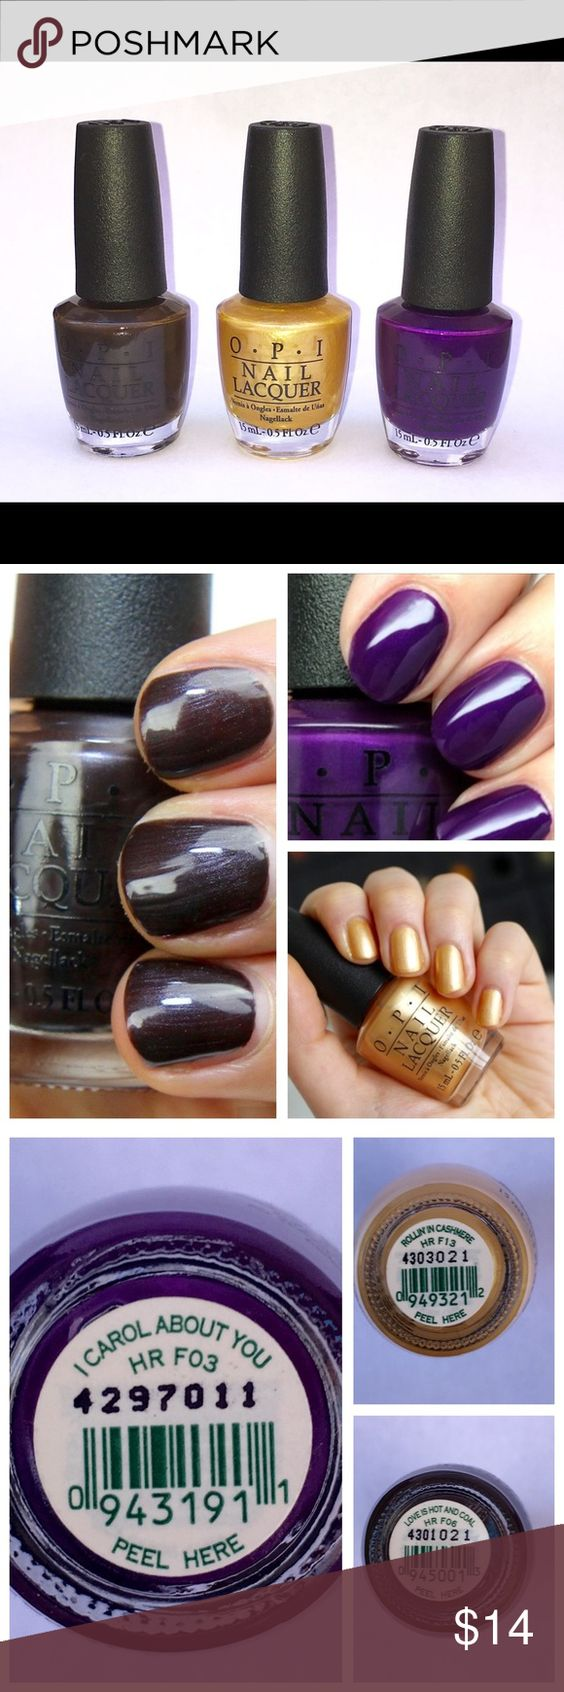 """OPI Set of Three Polishes OPI Set of Three Polishes from the Gwen Stefani Holiday Collection for OPI.  """" I Carol About You"""", """"Rollin' in Cashmere"""", and """"Love is Hot and Coal"""". NWOT. O.P.I Makeup"""